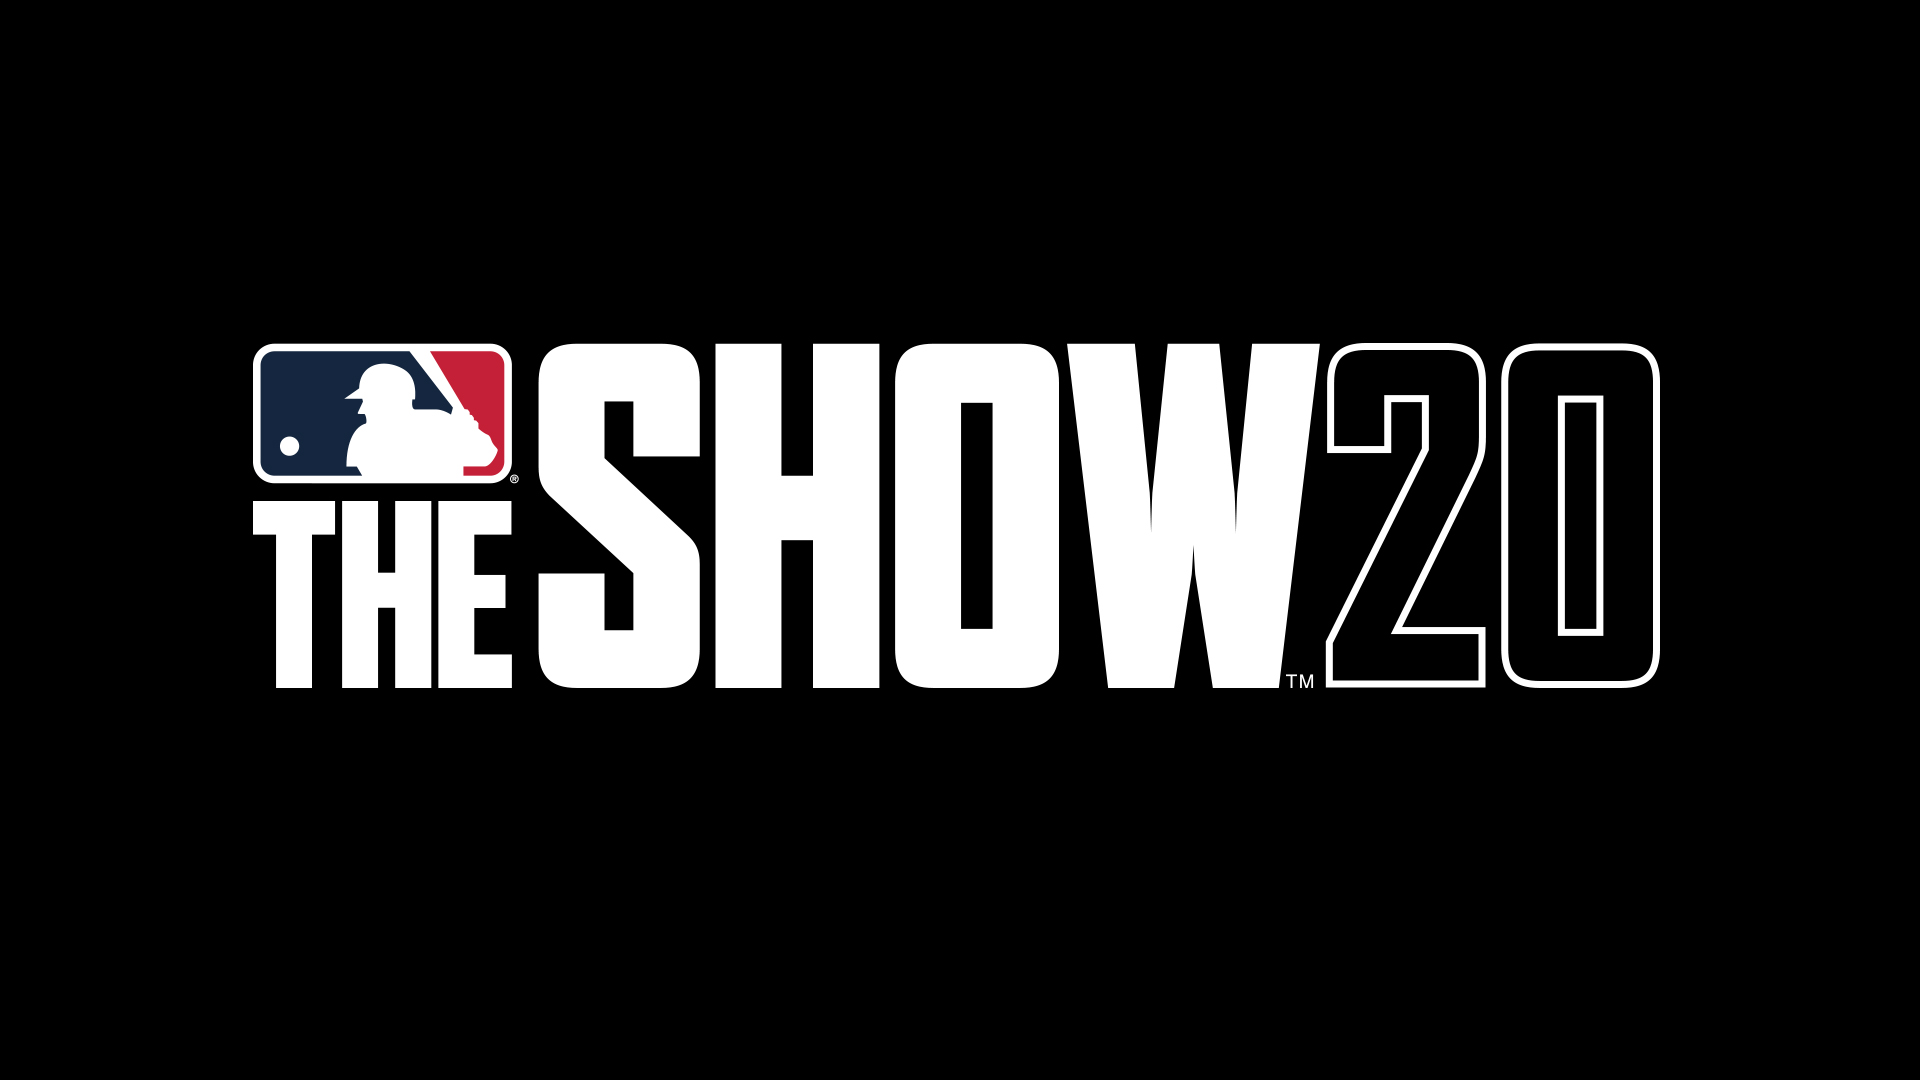 MLB The Show 20 - logo